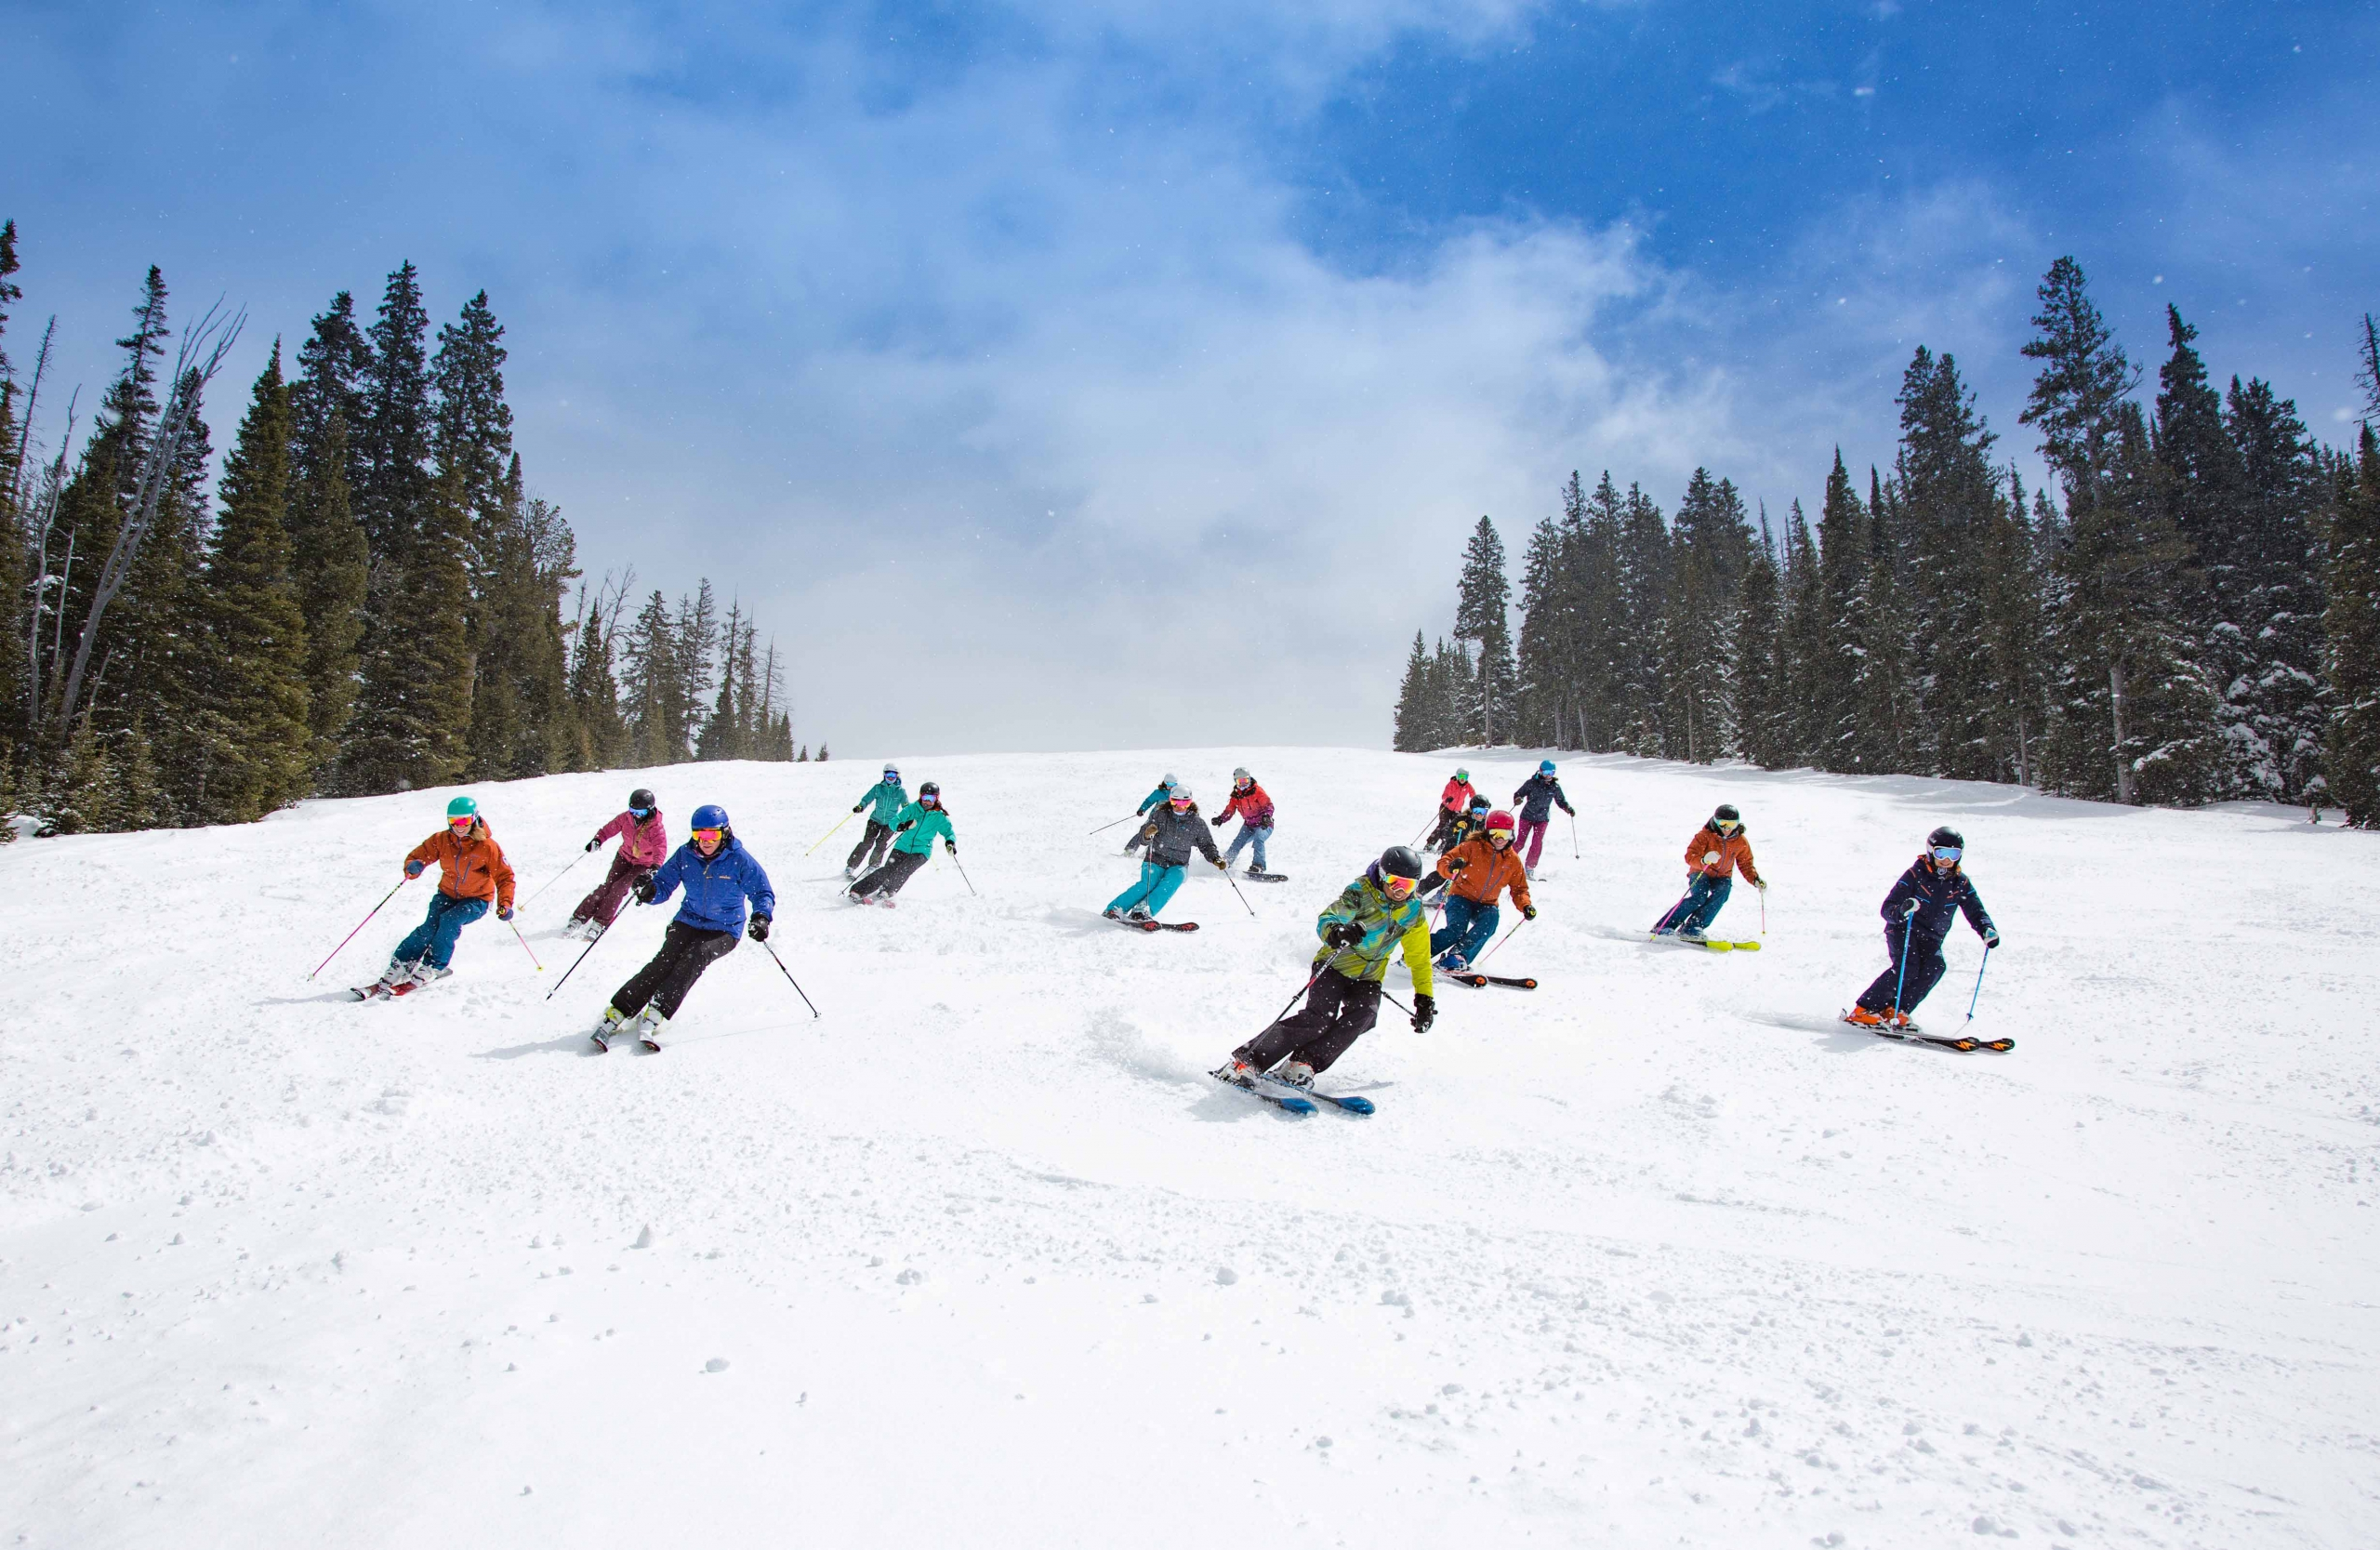 The Nancy Oakes Hall Women's Scholarship Committee skis and snowboards with scholarship recipients